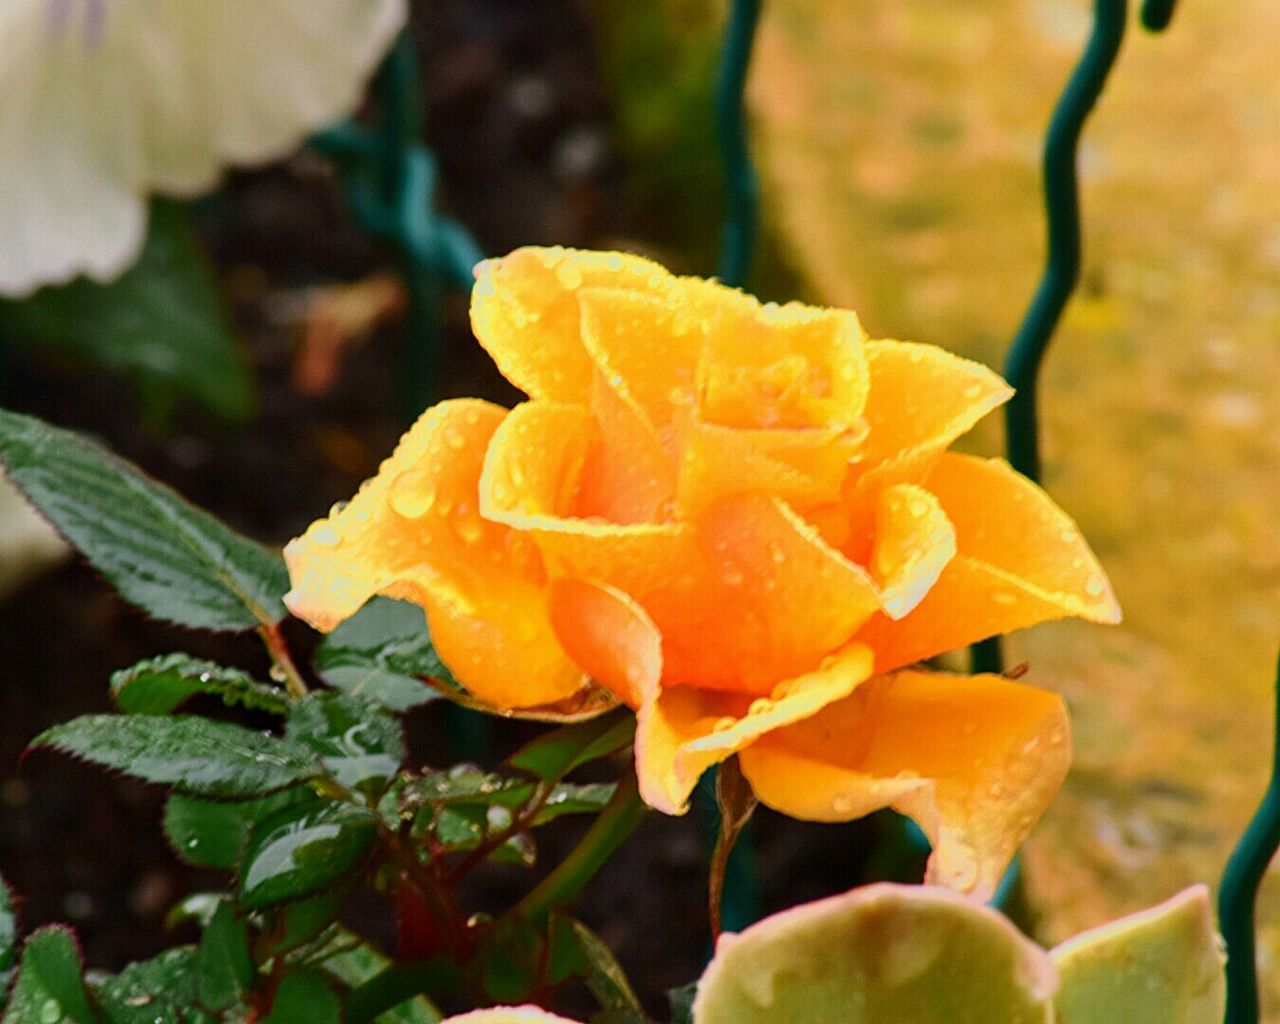 Nature Flower Plant Yellow Growth Beauty In Nature Fragility Freshness Flower Head Nature_collection Roses Flowers  Spring Colours Spring Photography Springtime Rain Drops Rainy